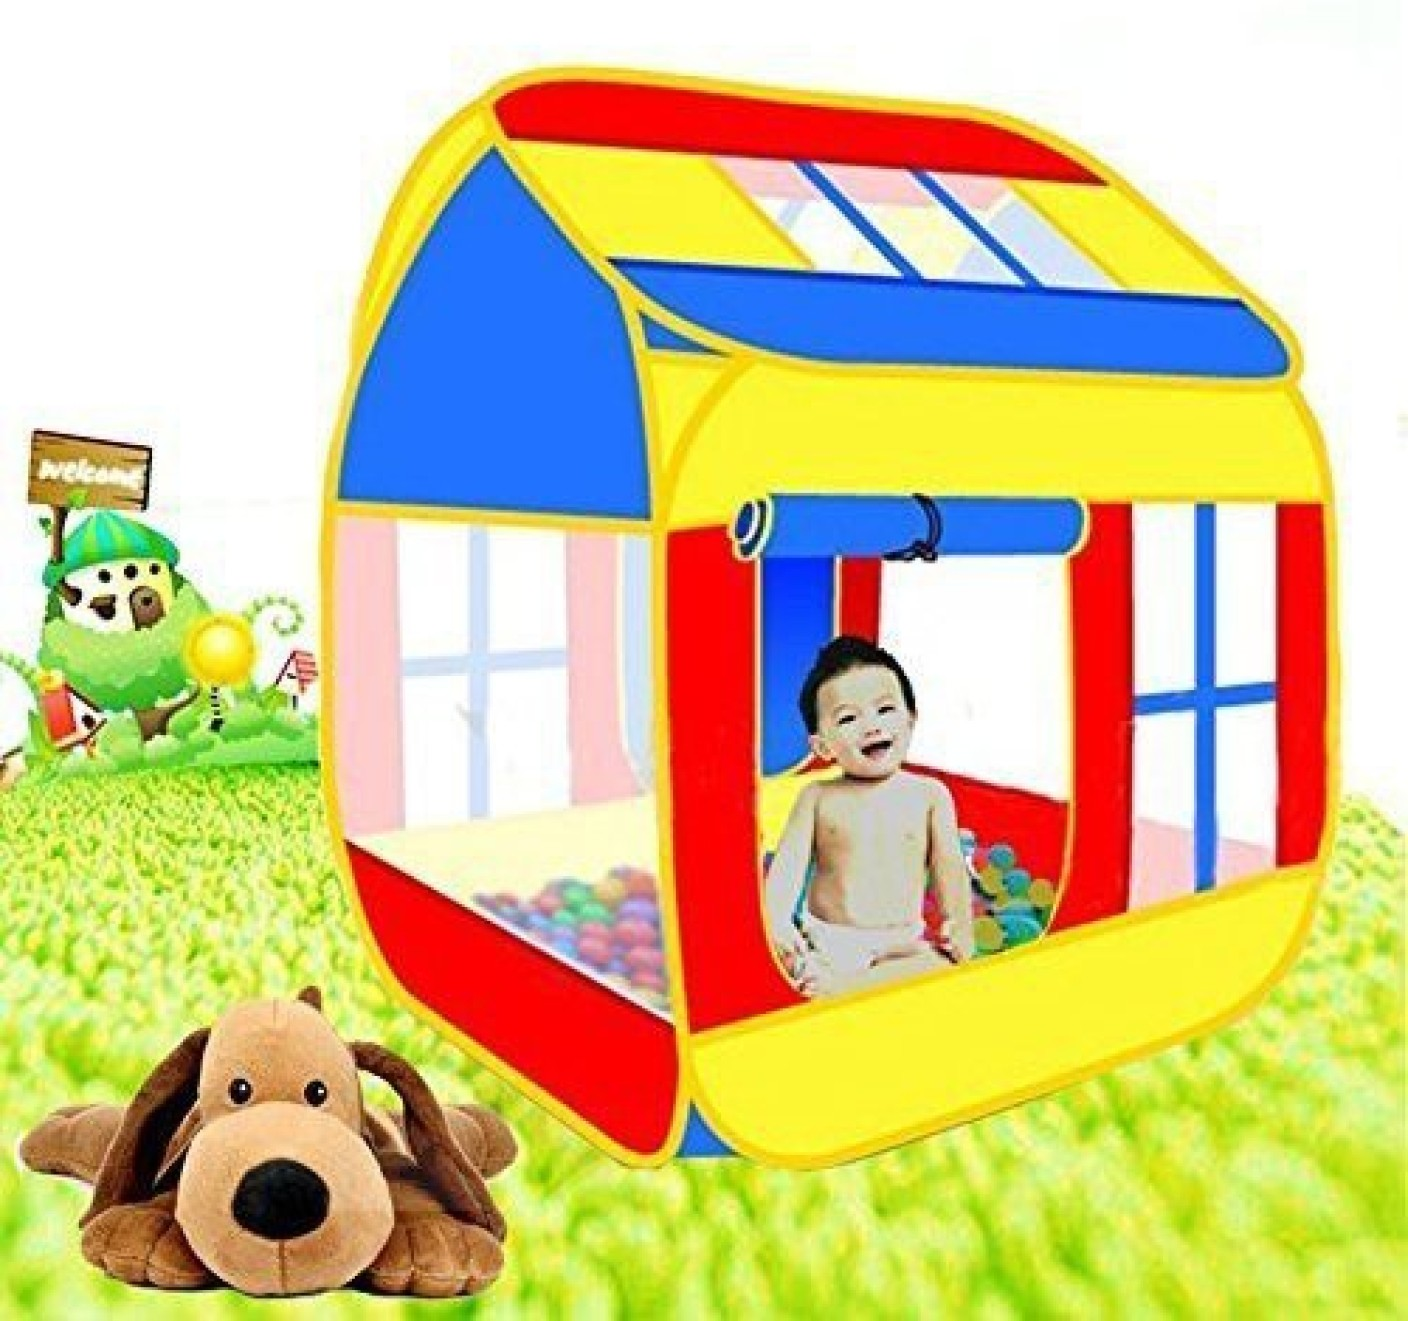 pigloo pop up play tent house for kids indoor and outdoor large